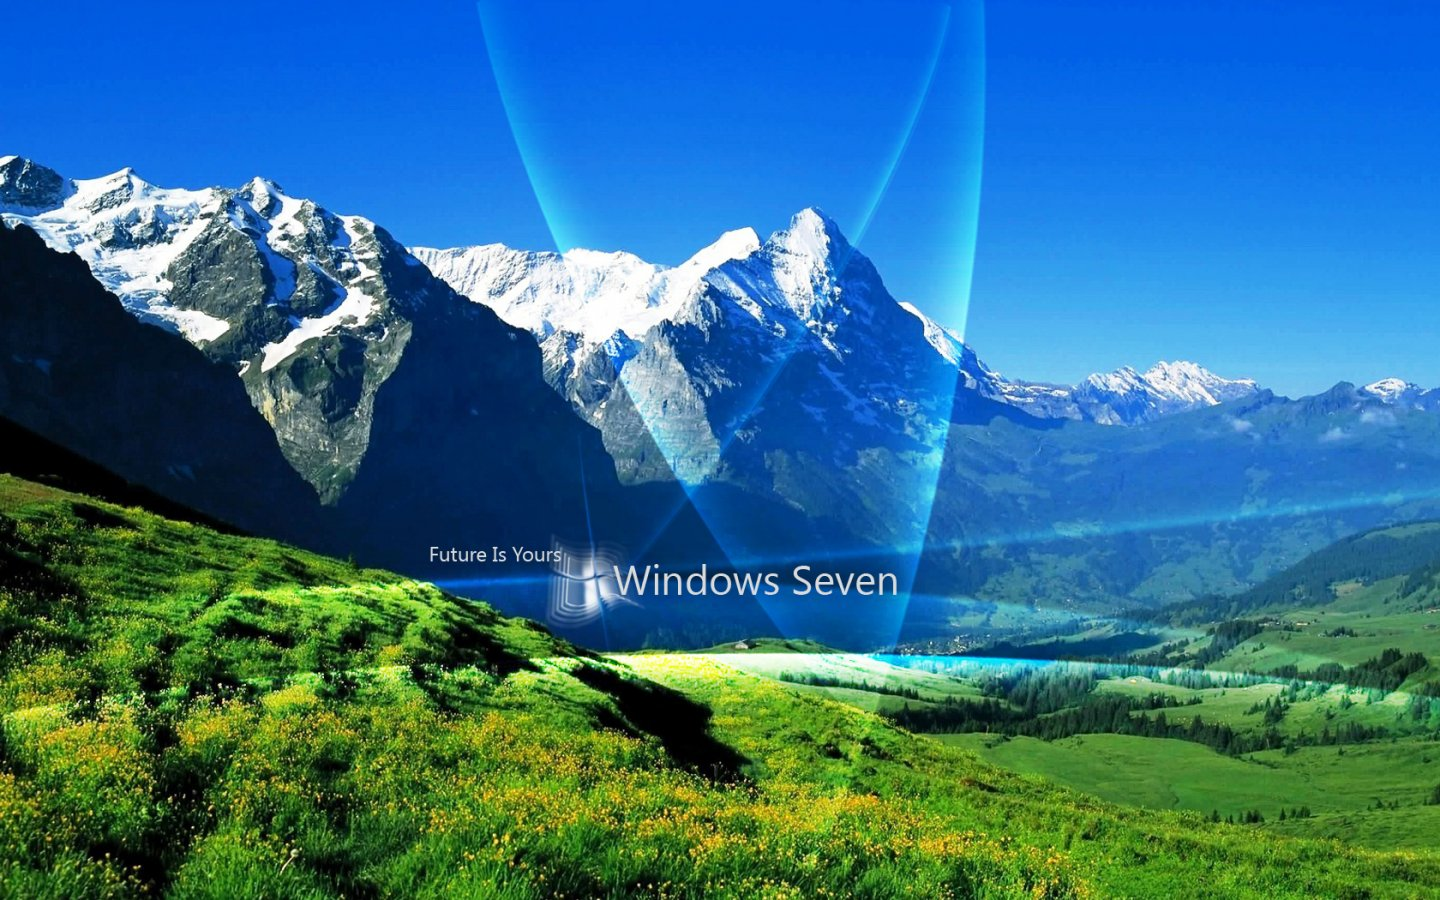 windows 7 wallpaper 1440x900 - photo #42